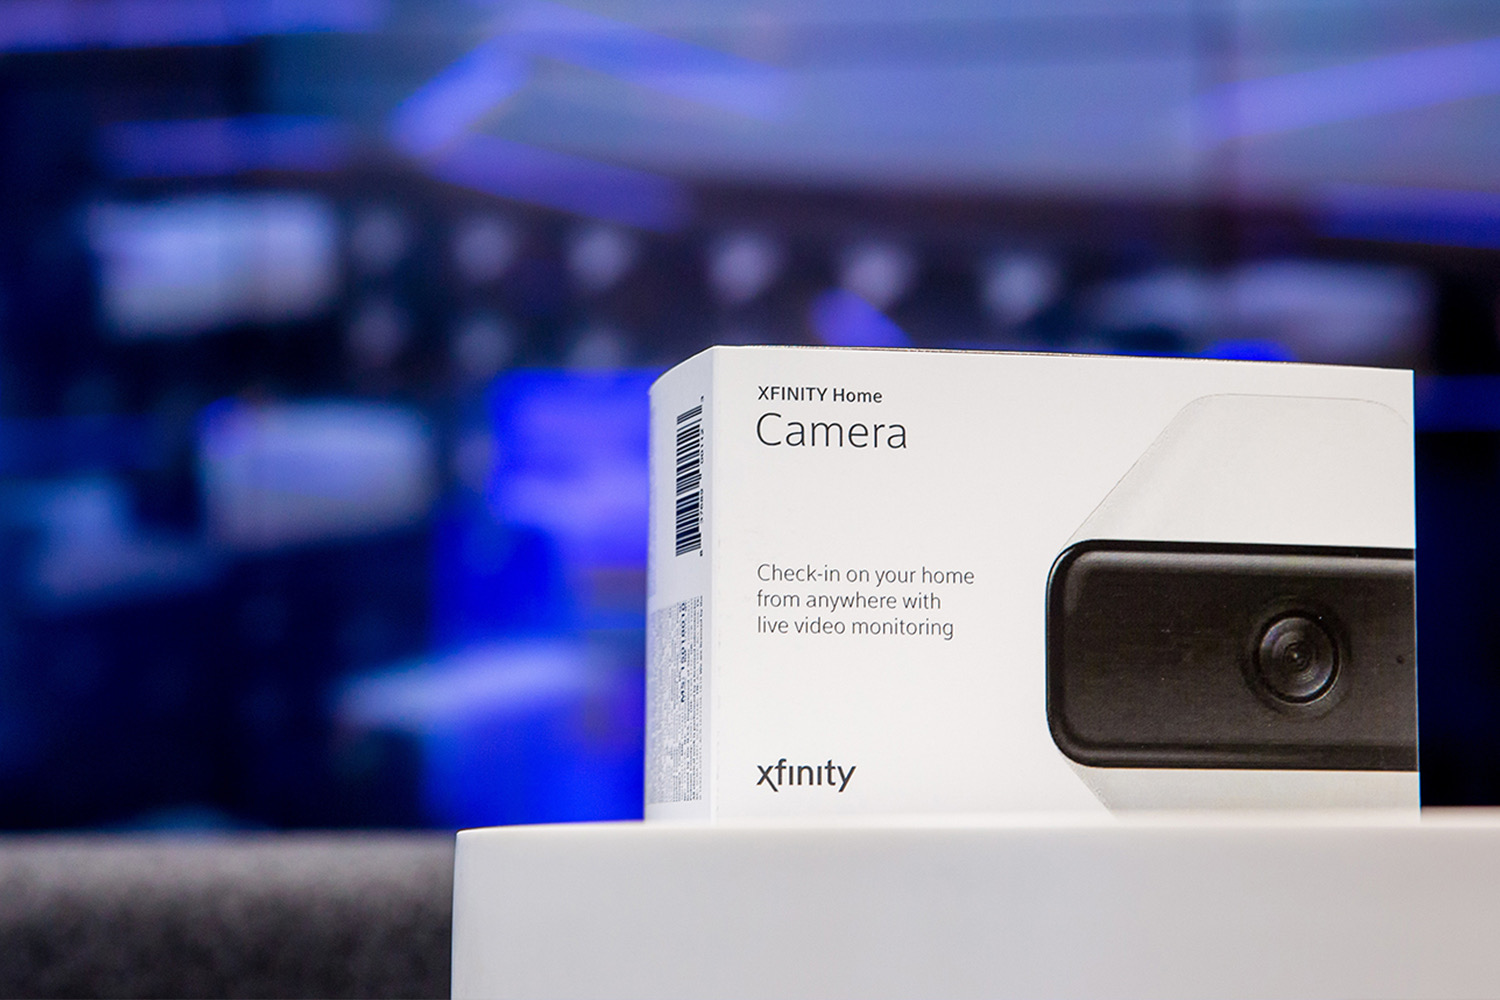 Comcast to expand its home automation capabilities across